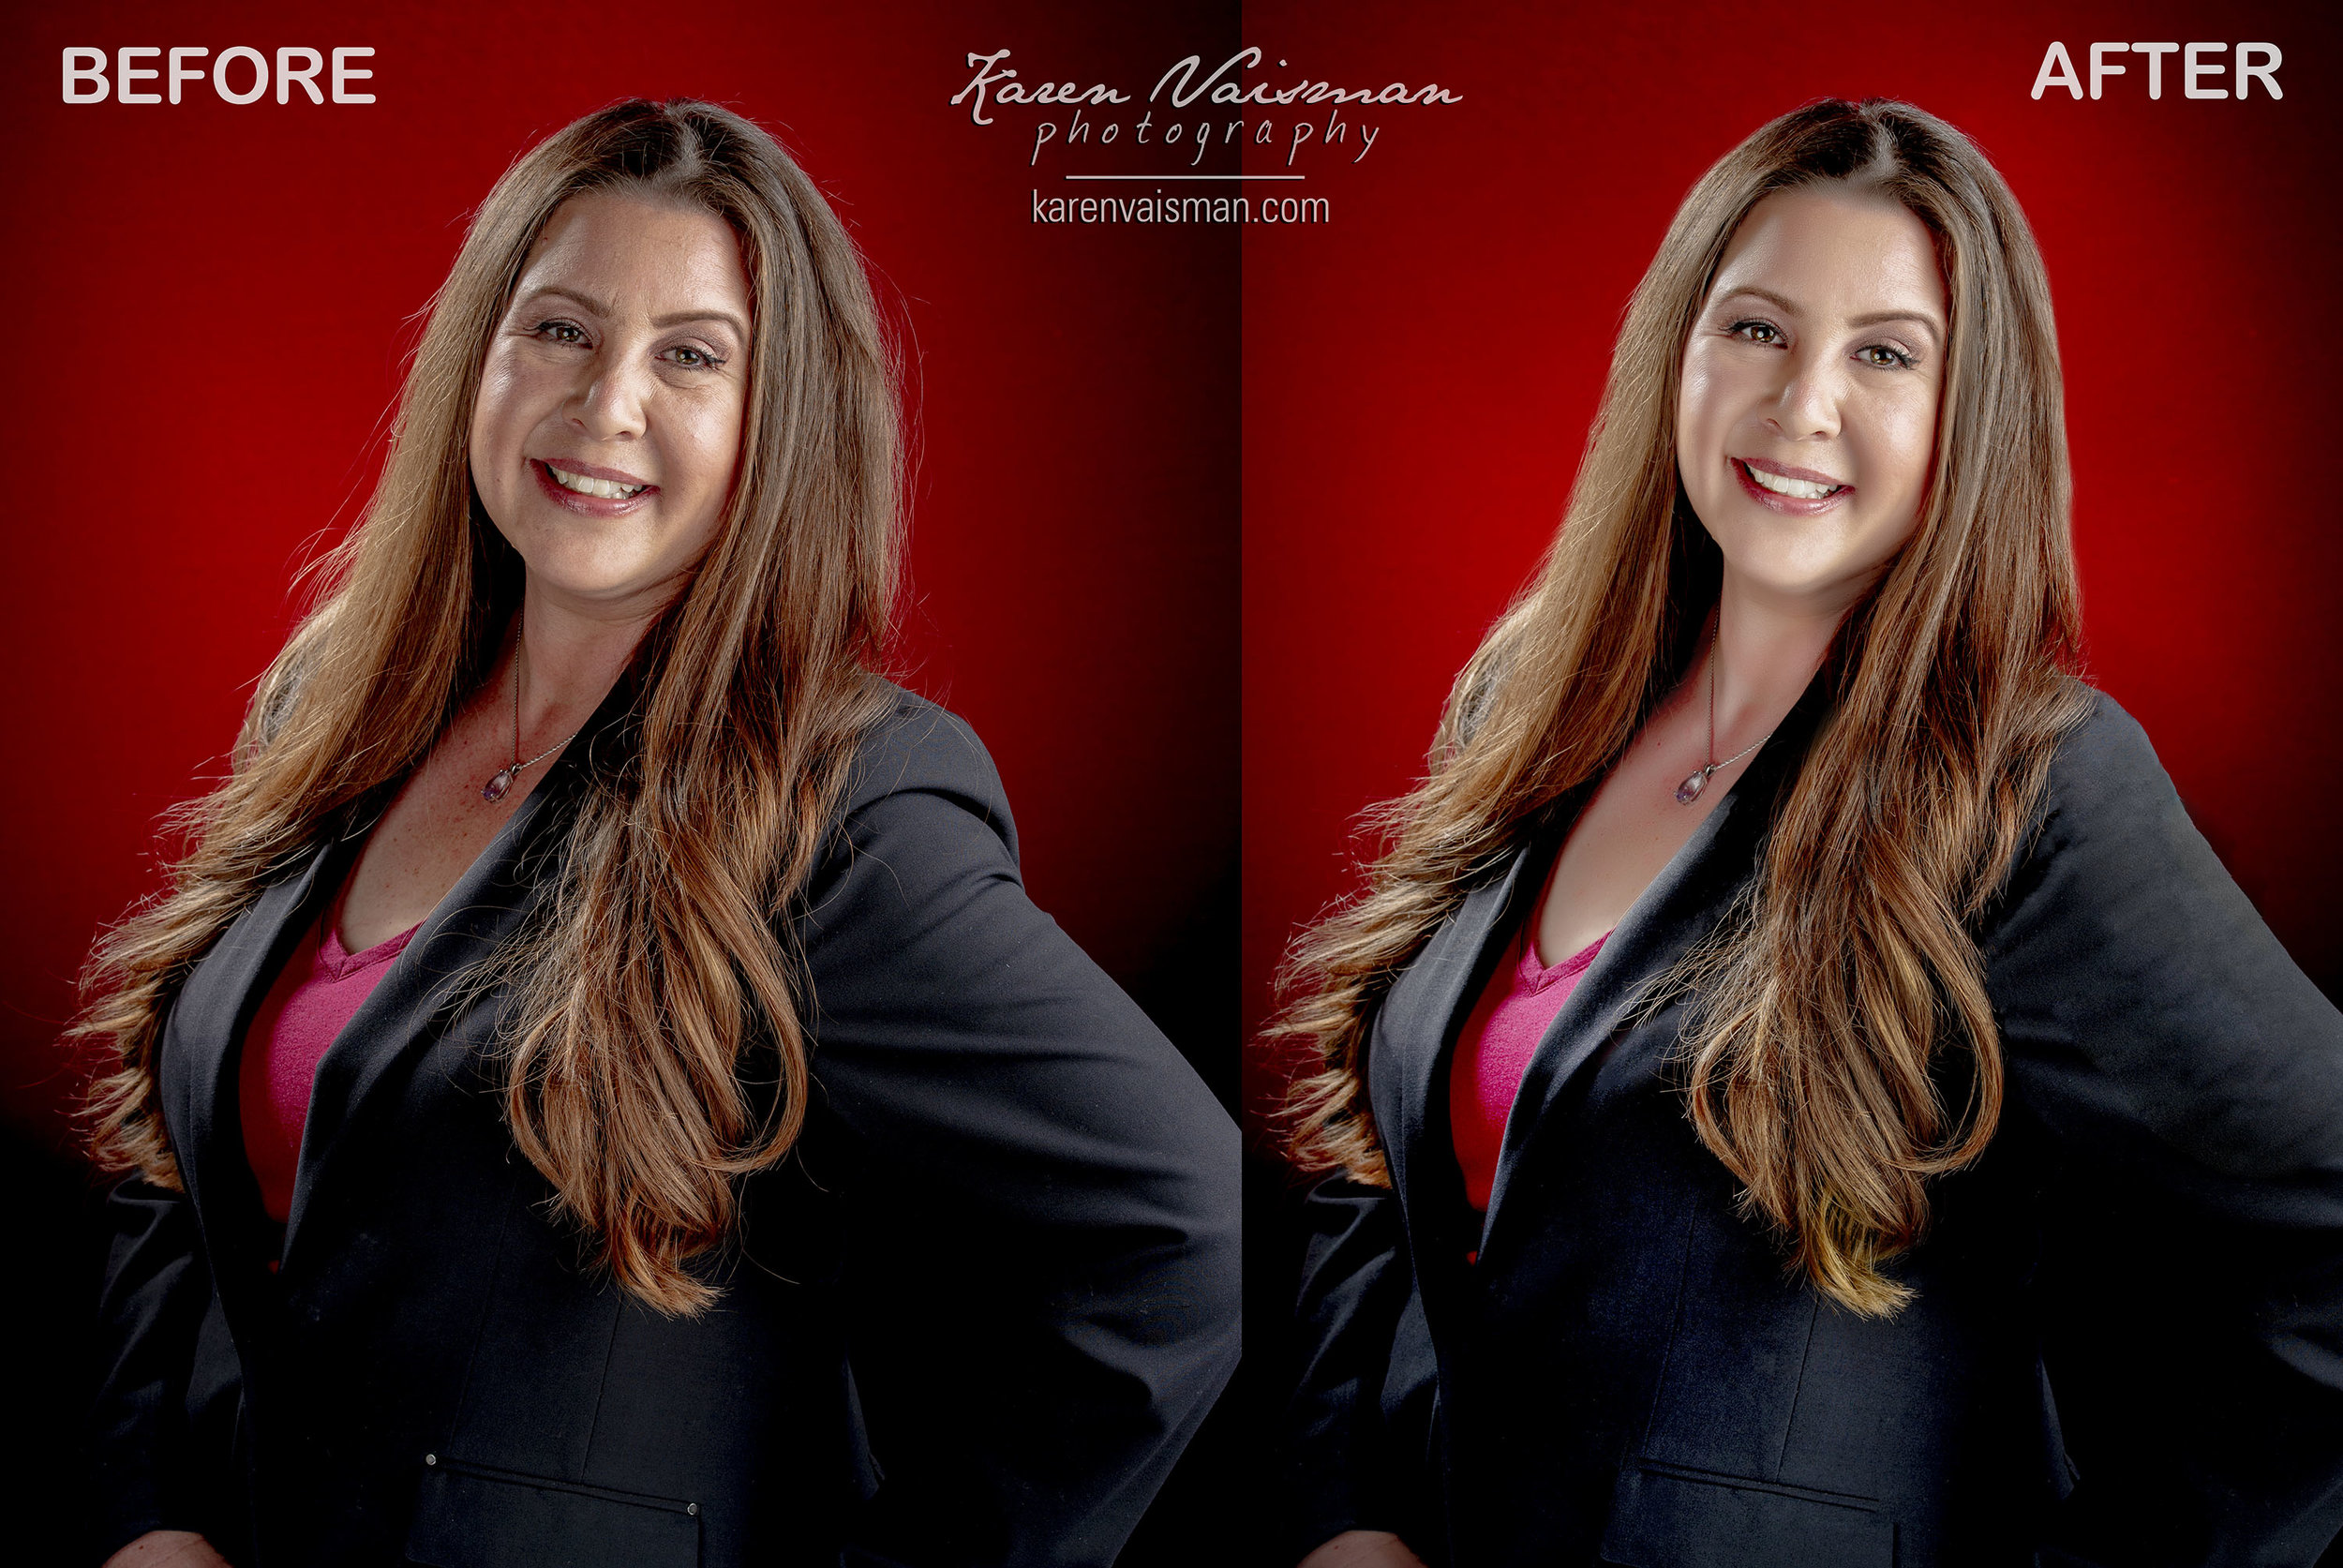 Before and After Professional LinkedIn Profile Picture Retouching - Notice smile adjustment, weight-loss, skin softening, under eye circles, neck crease removal, reduce wrinkles, lighten brow crease and smile lines.